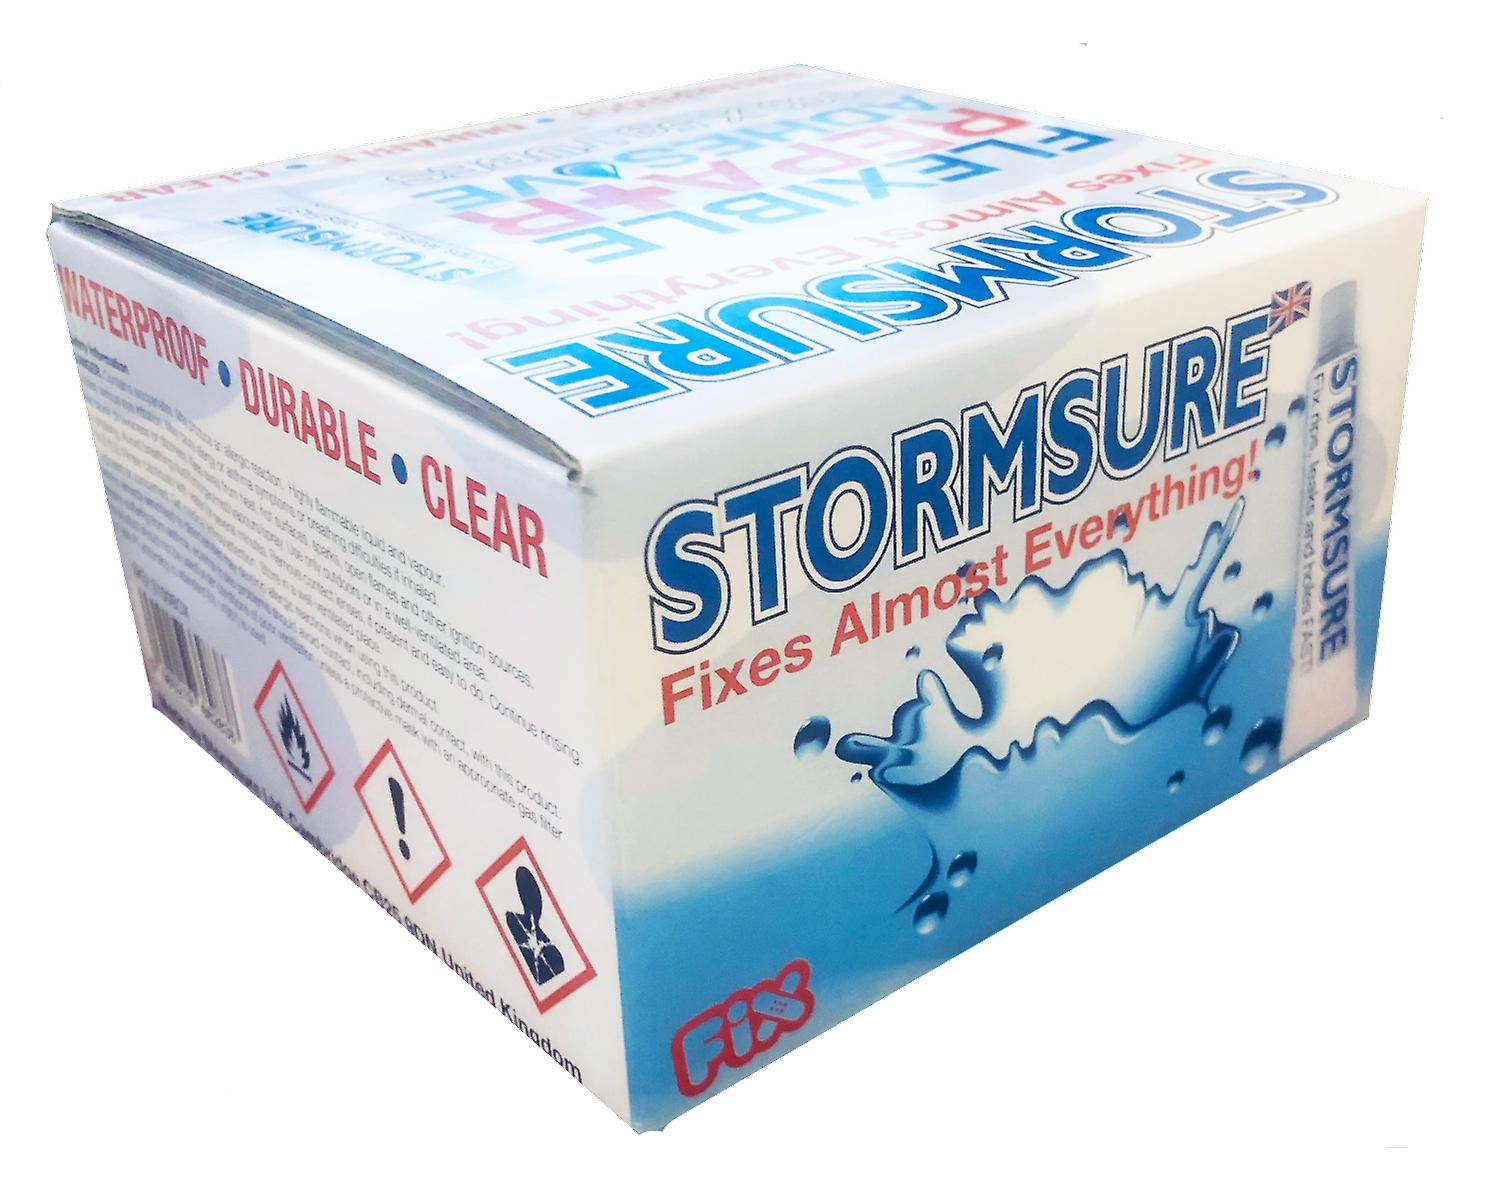 Stormsure Flexible Repair Adhesive 5g (Box of 100)